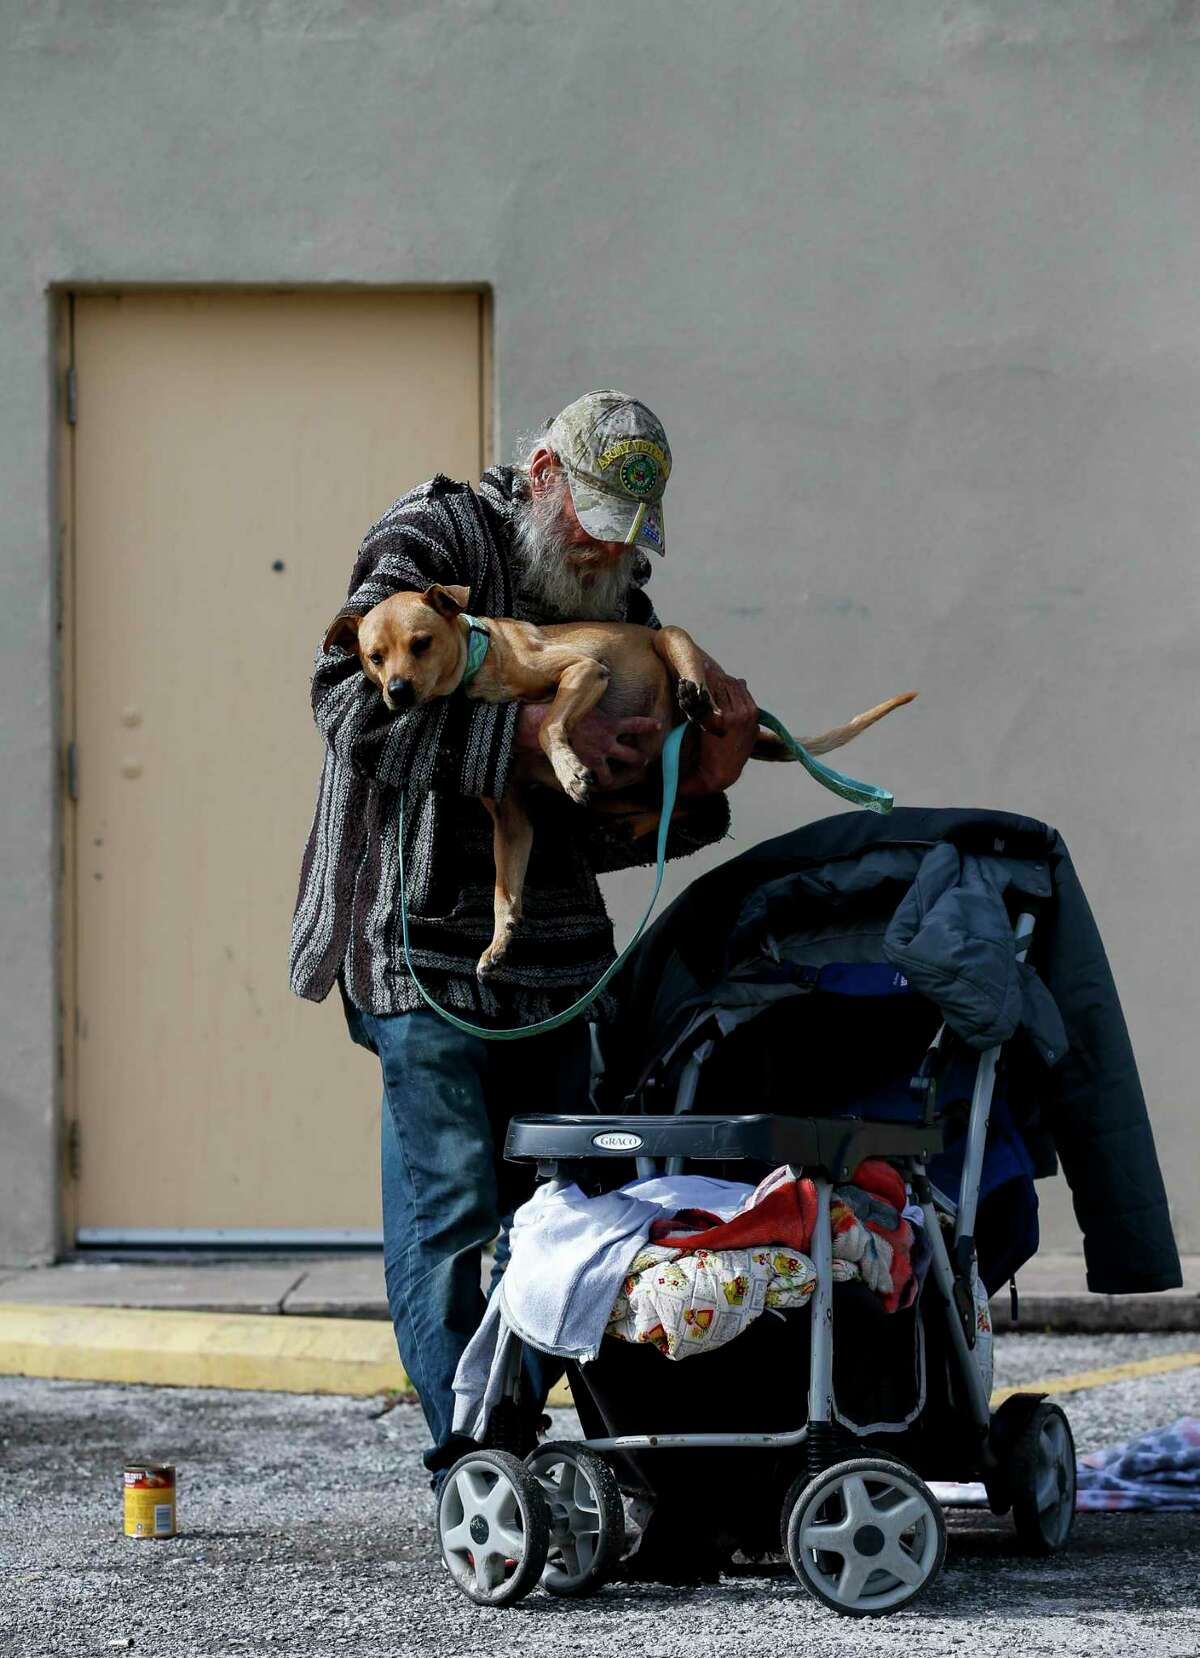 Billy Wooldridge places his dog, Kujo, in a stroller after feeding him on a Family Dollar parking lot Thursday, Jan. 23, 2020, in Galveston, Texas. Wooldridge is currently homeless in Galveston.